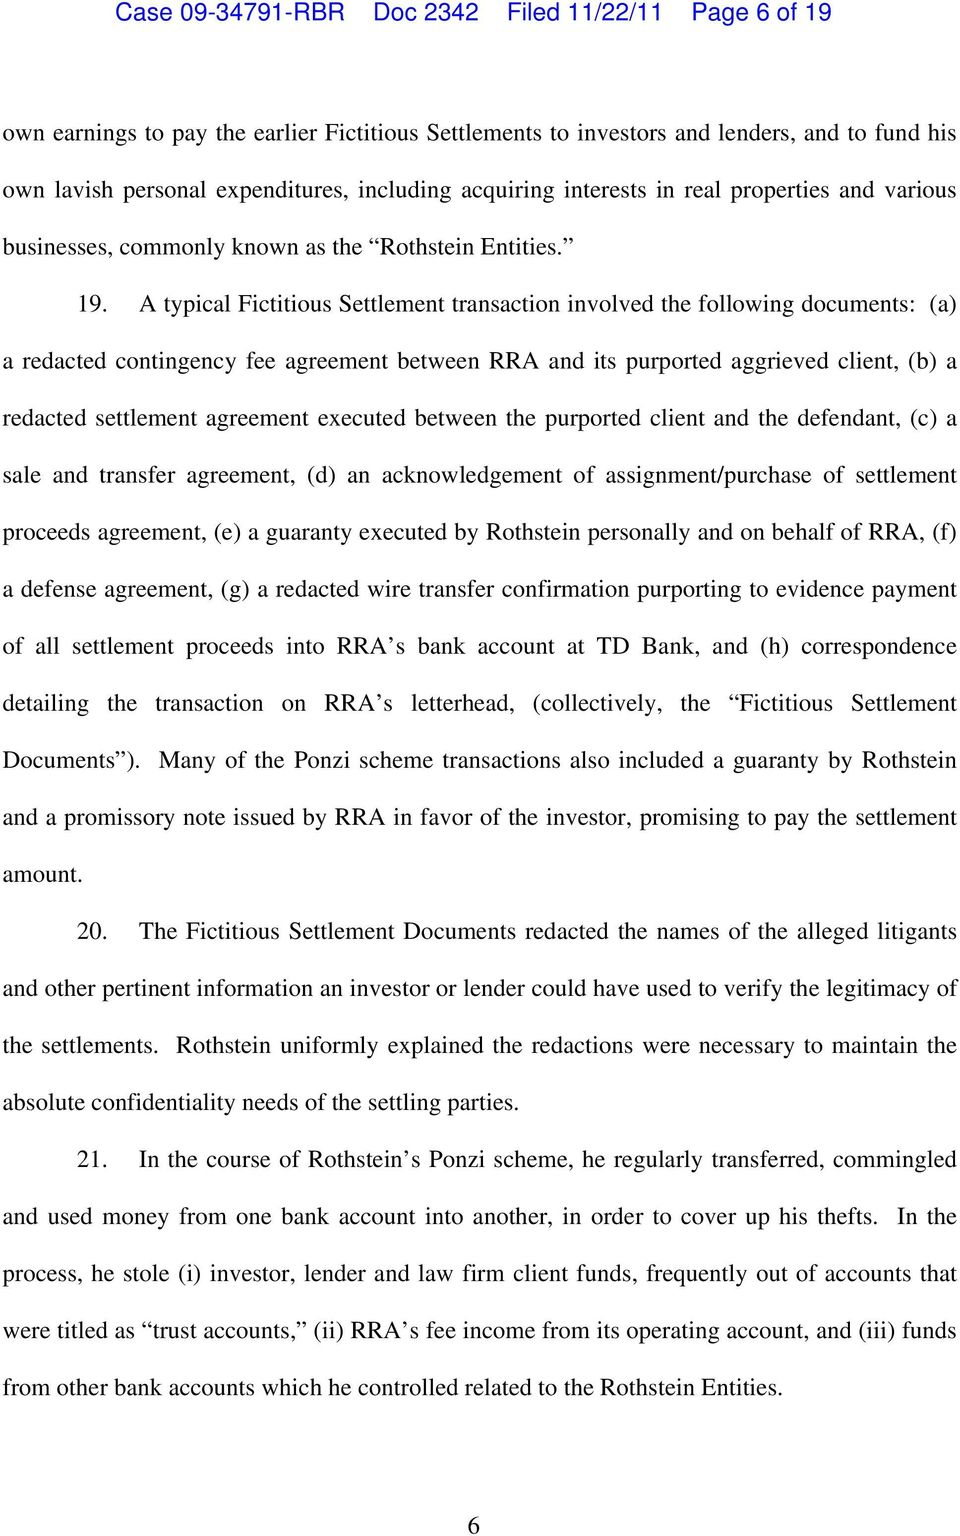 A typical Fictitious Settlement transaction involved the following documents: (a) a redacted contingency fee agreement between RRA and its purported aggrieved client, (b) a redacted settlement